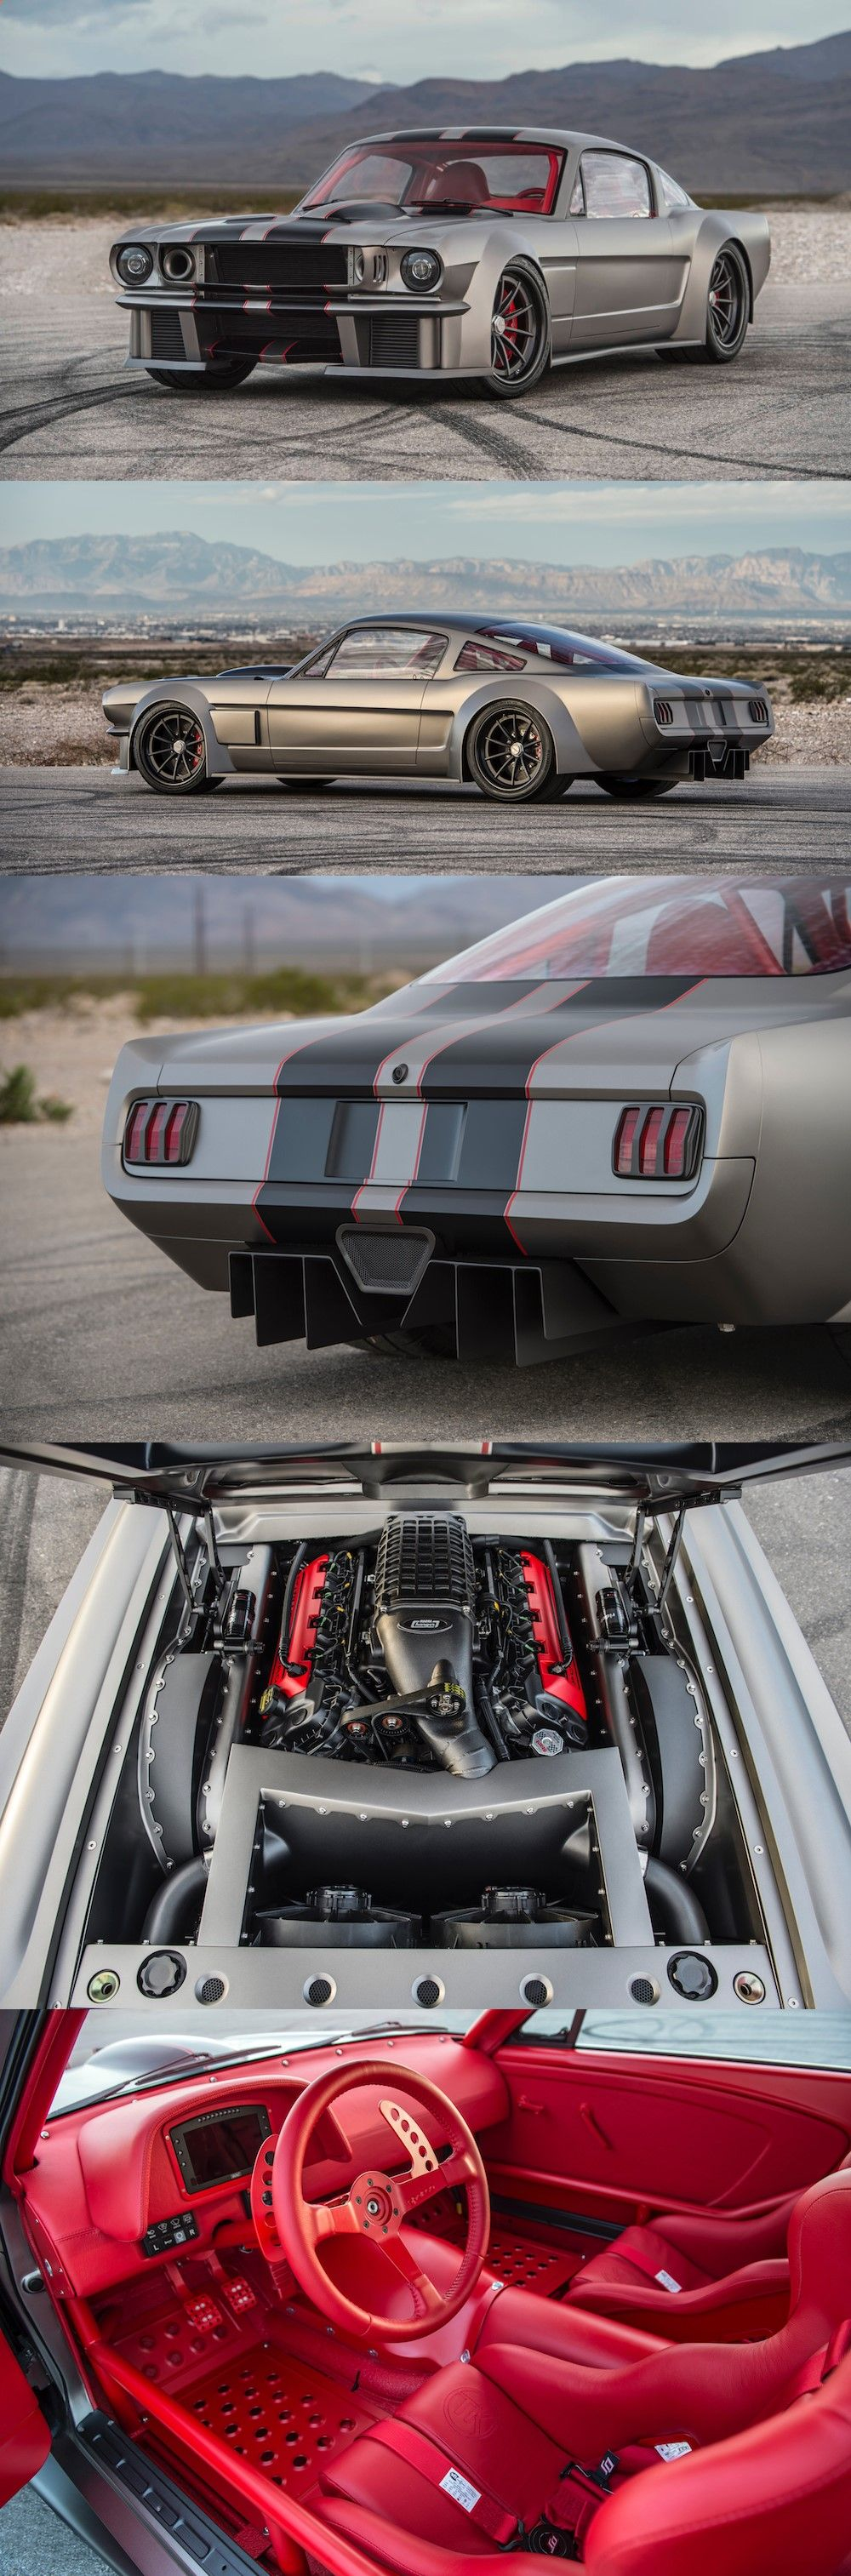 1 000 HP 1965 Ford Mustang by Timeless Kustoms California